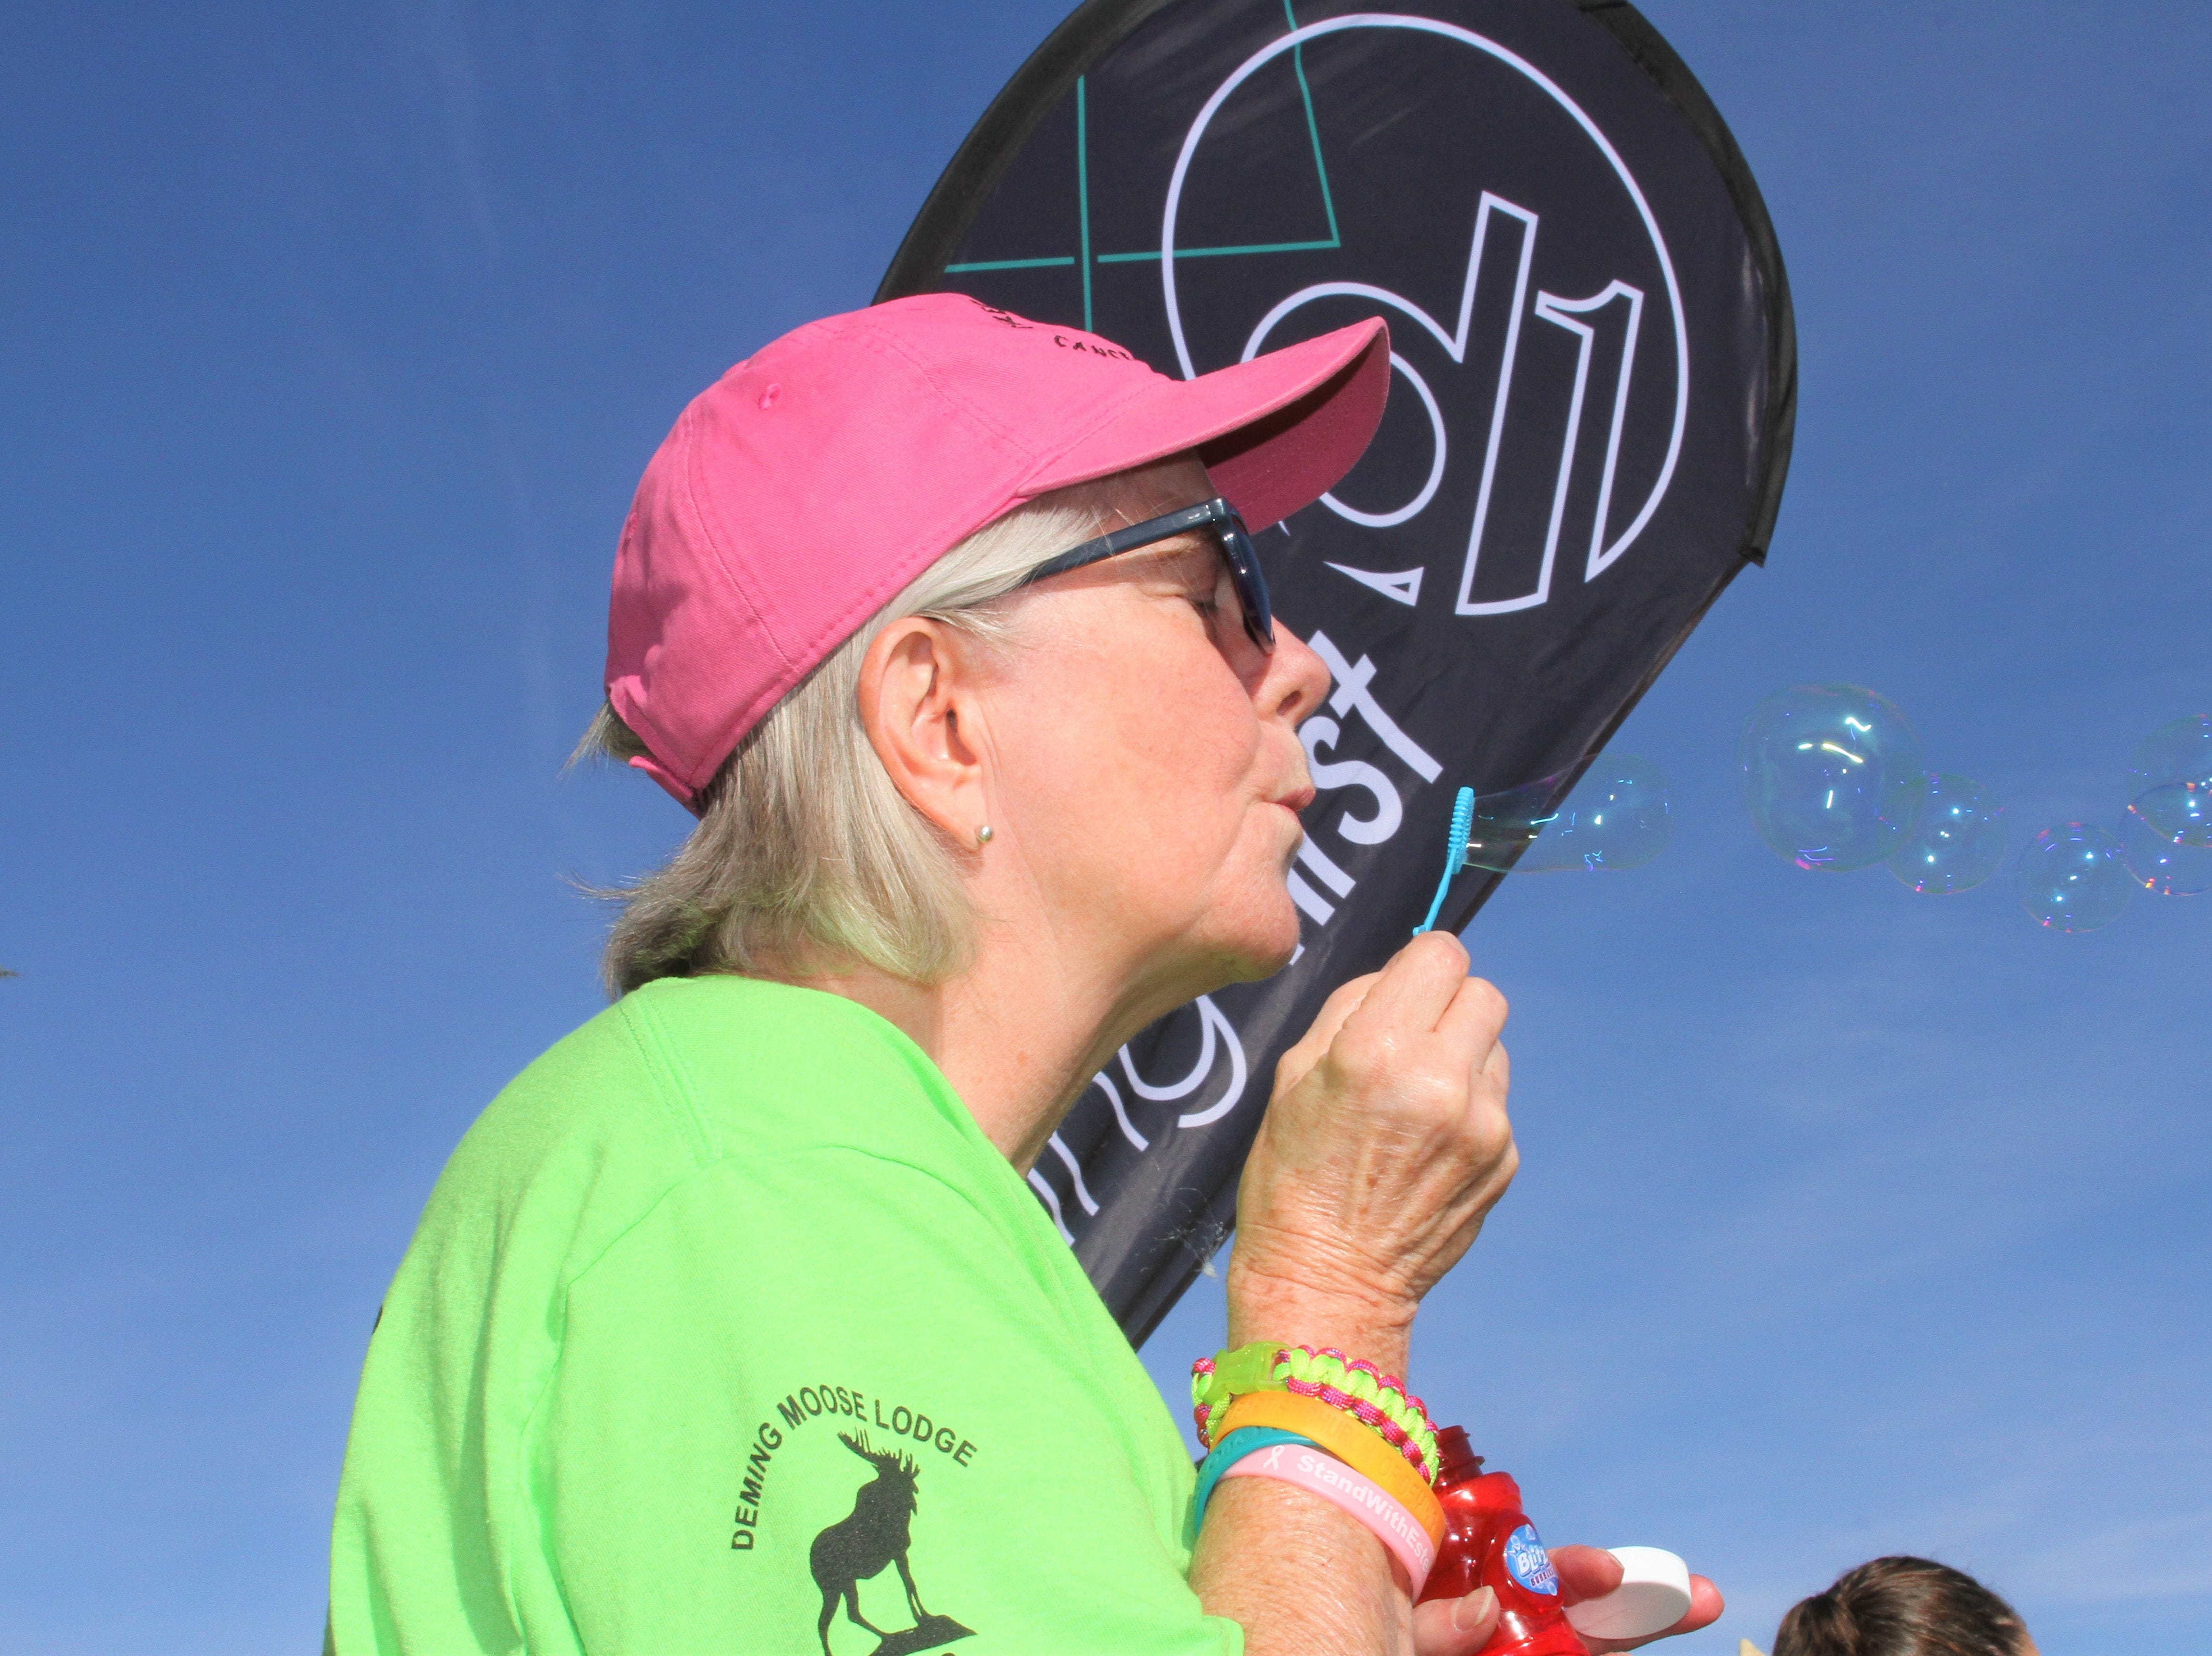 Mary Upton of First Baptist Church blowing bubbles as she waits for the Celebration of Life to begin.